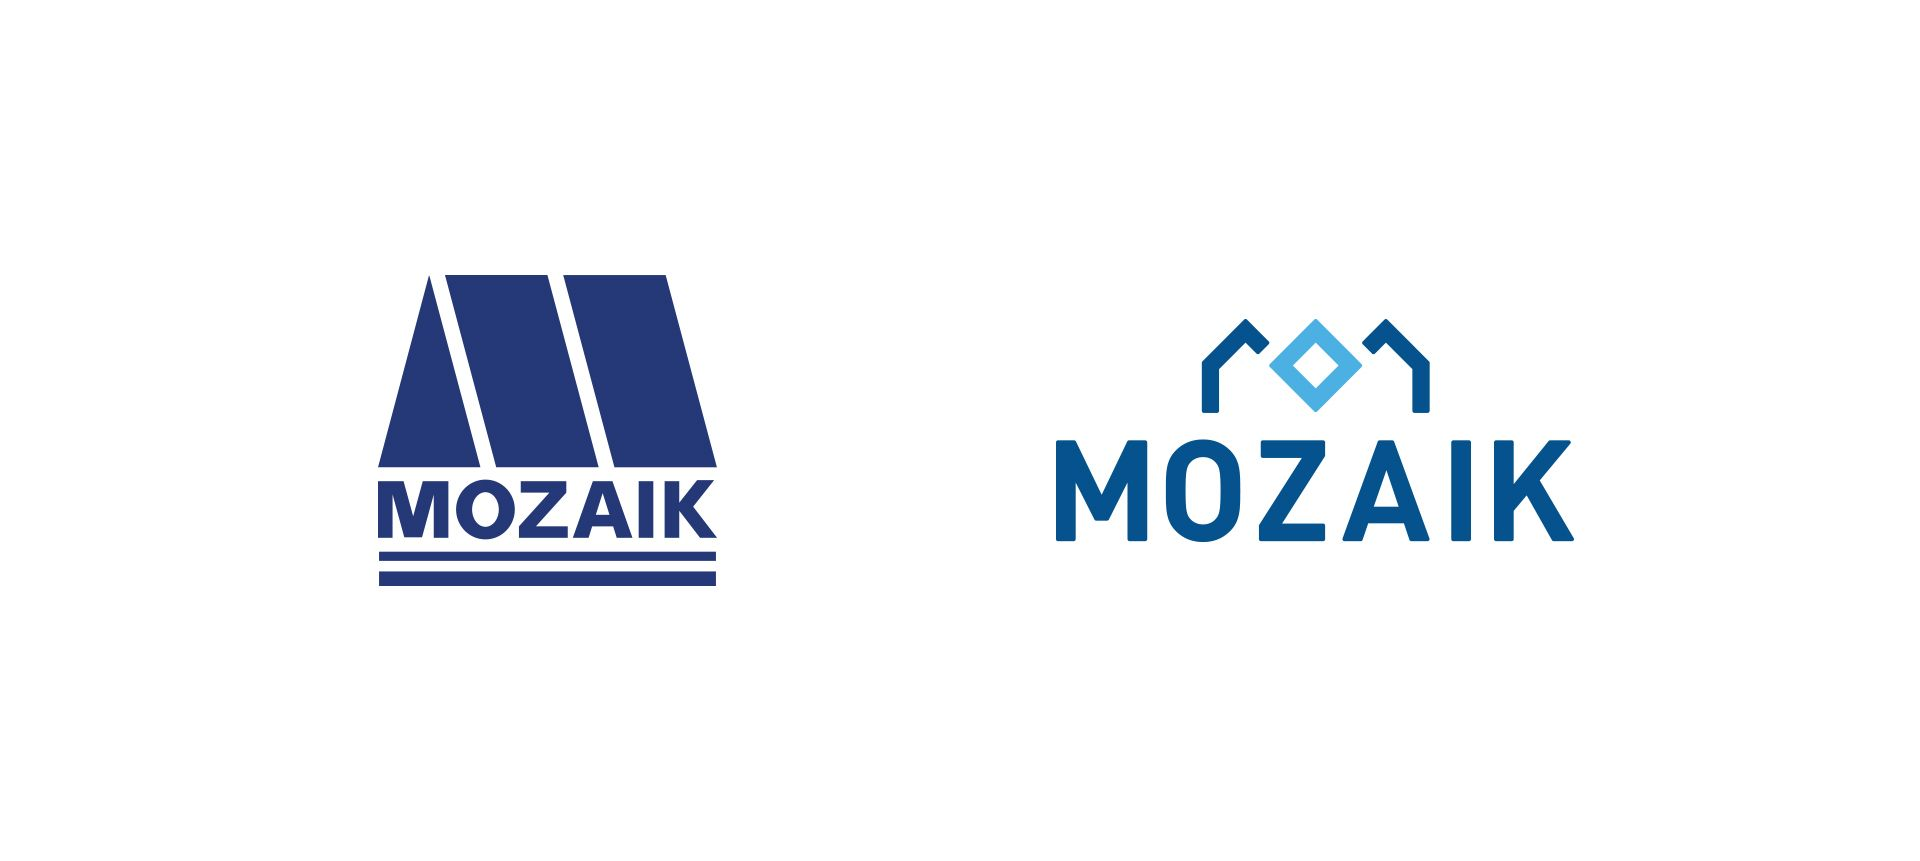 Mozaik logo old vs new comparison